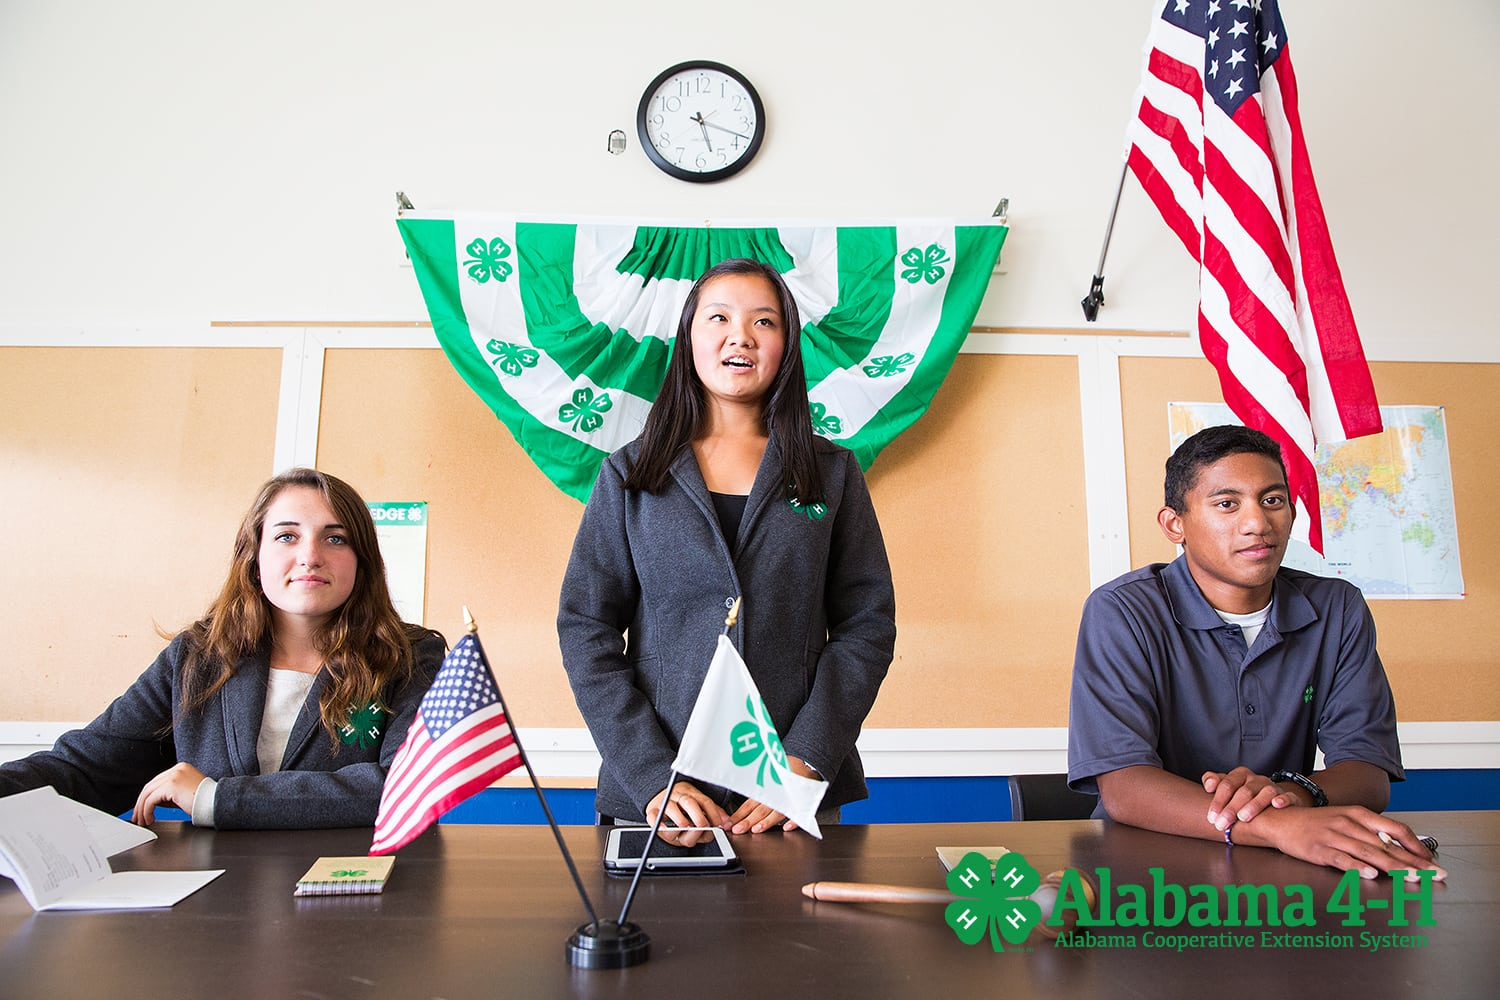 Three youth behind a desk with banners and national flag; Alabama 4-H